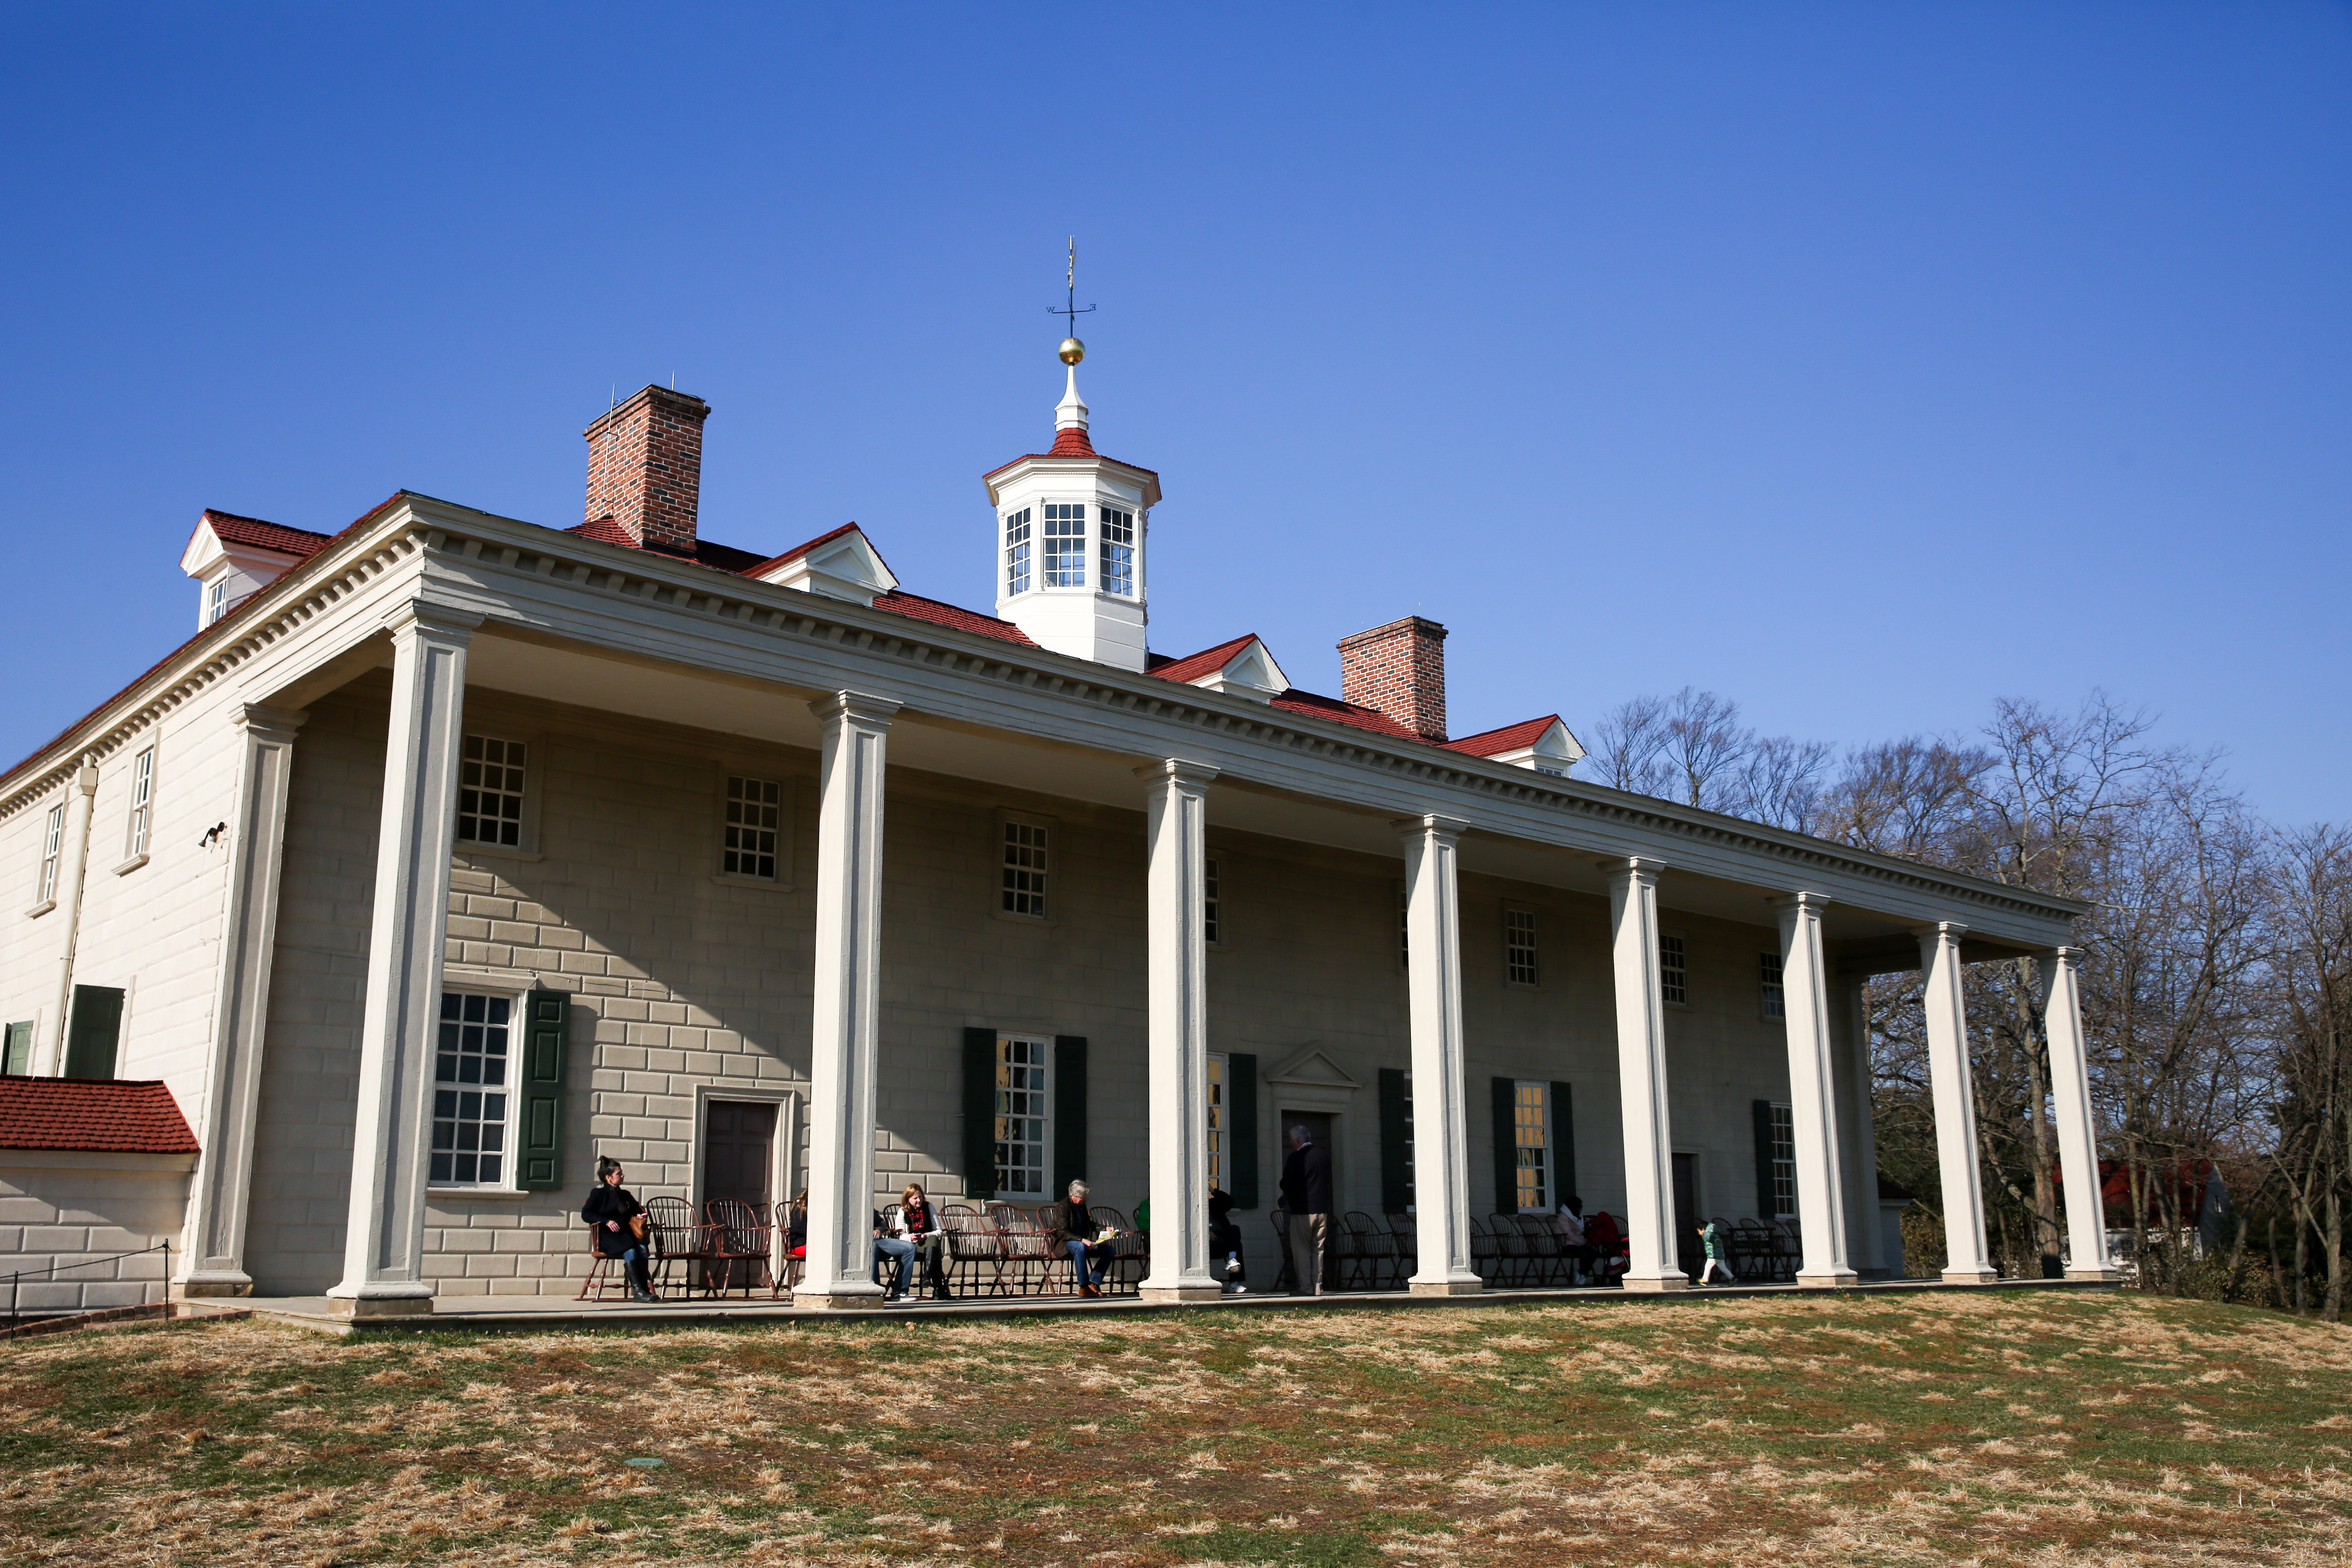 What better way to spend a long weekend than by enjoying some history and culture... for free! Celebrate George Washington's birthday at his home at Mount Vernon, and skip the regular $20 admission fee. All day long there will be special events, starting with a wreath laying at Washington's Tomb at 10 a.m. to character performances, syrup tastings, musical demonstrations and even a special military demonstration. (Image: Amanda Andrade-Rhoades/ DC Refined)